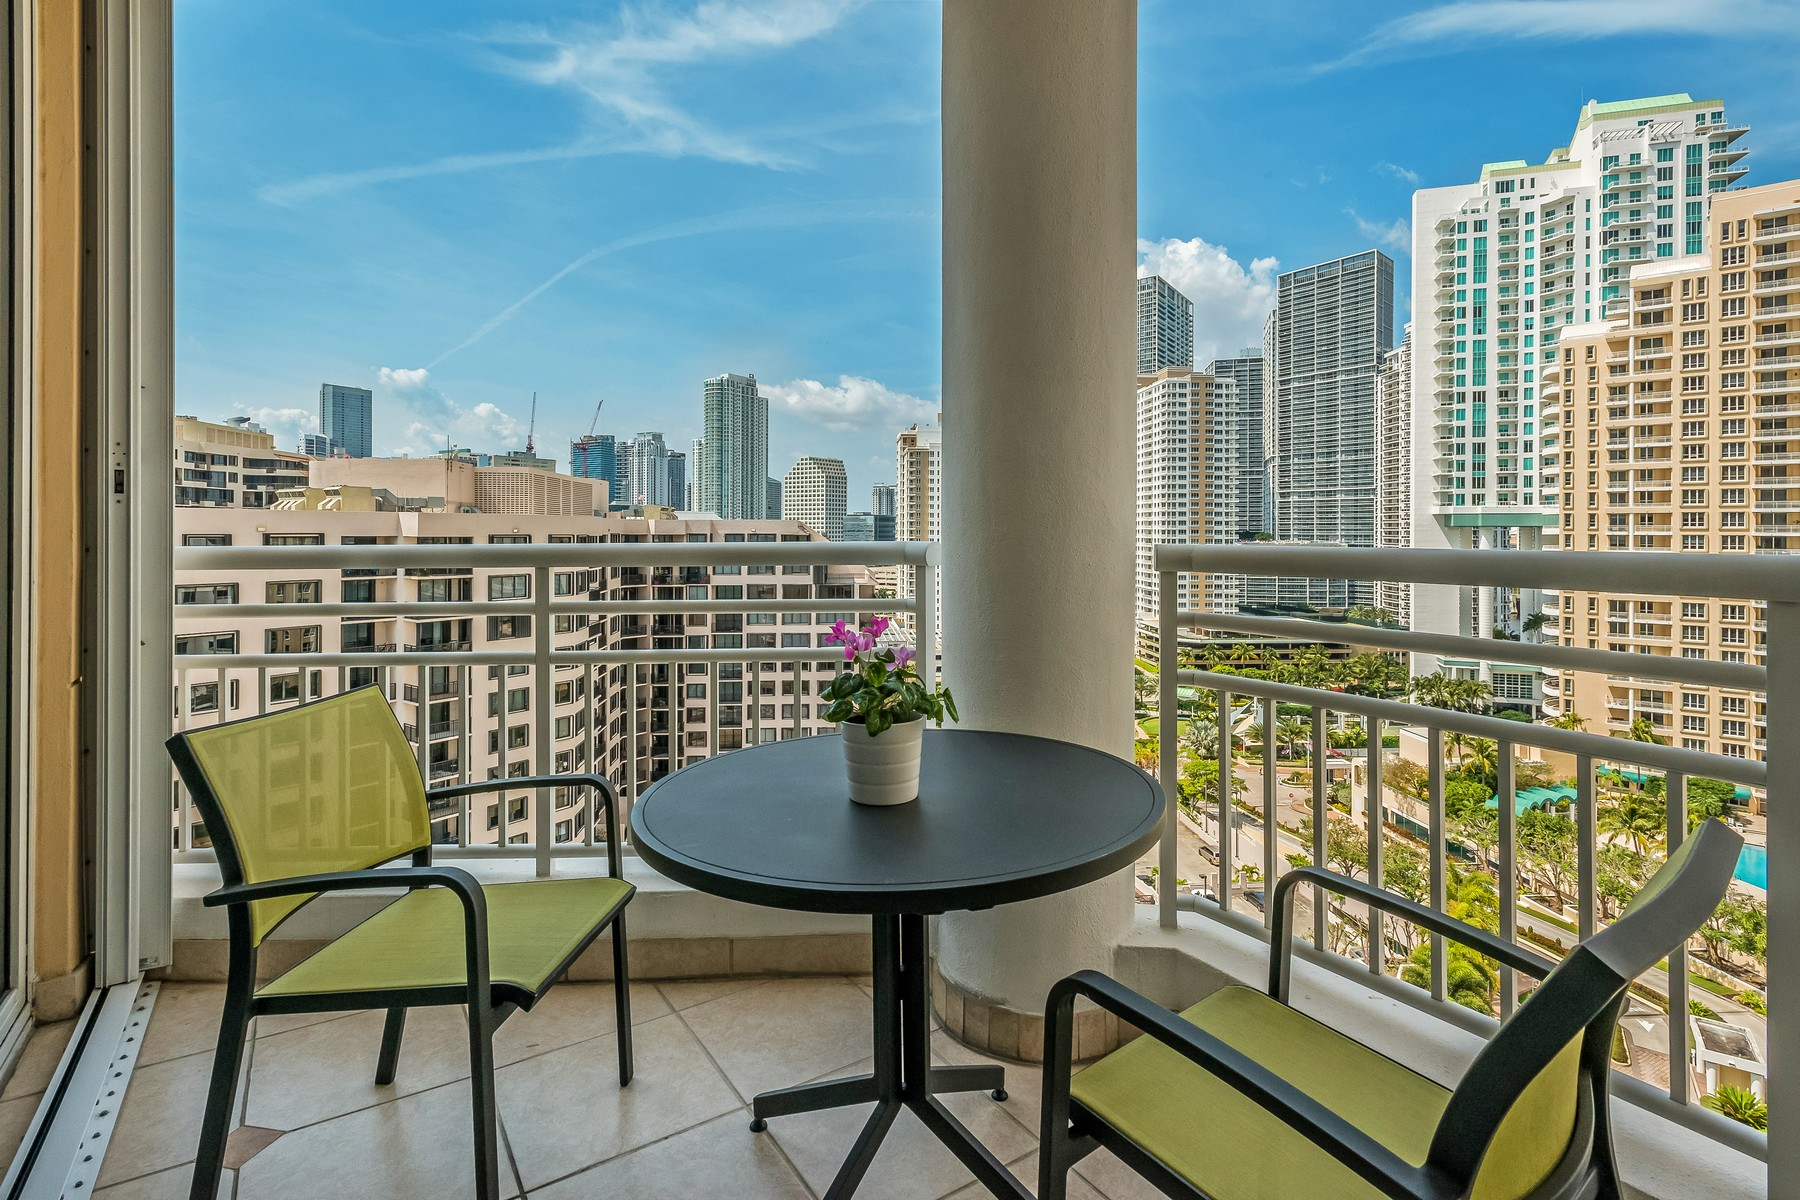 Condominium for Sale at 808 Brickell Key Dr #1708 808 Brickell Key Dr 1708 Miami, Florida, 33131 United States